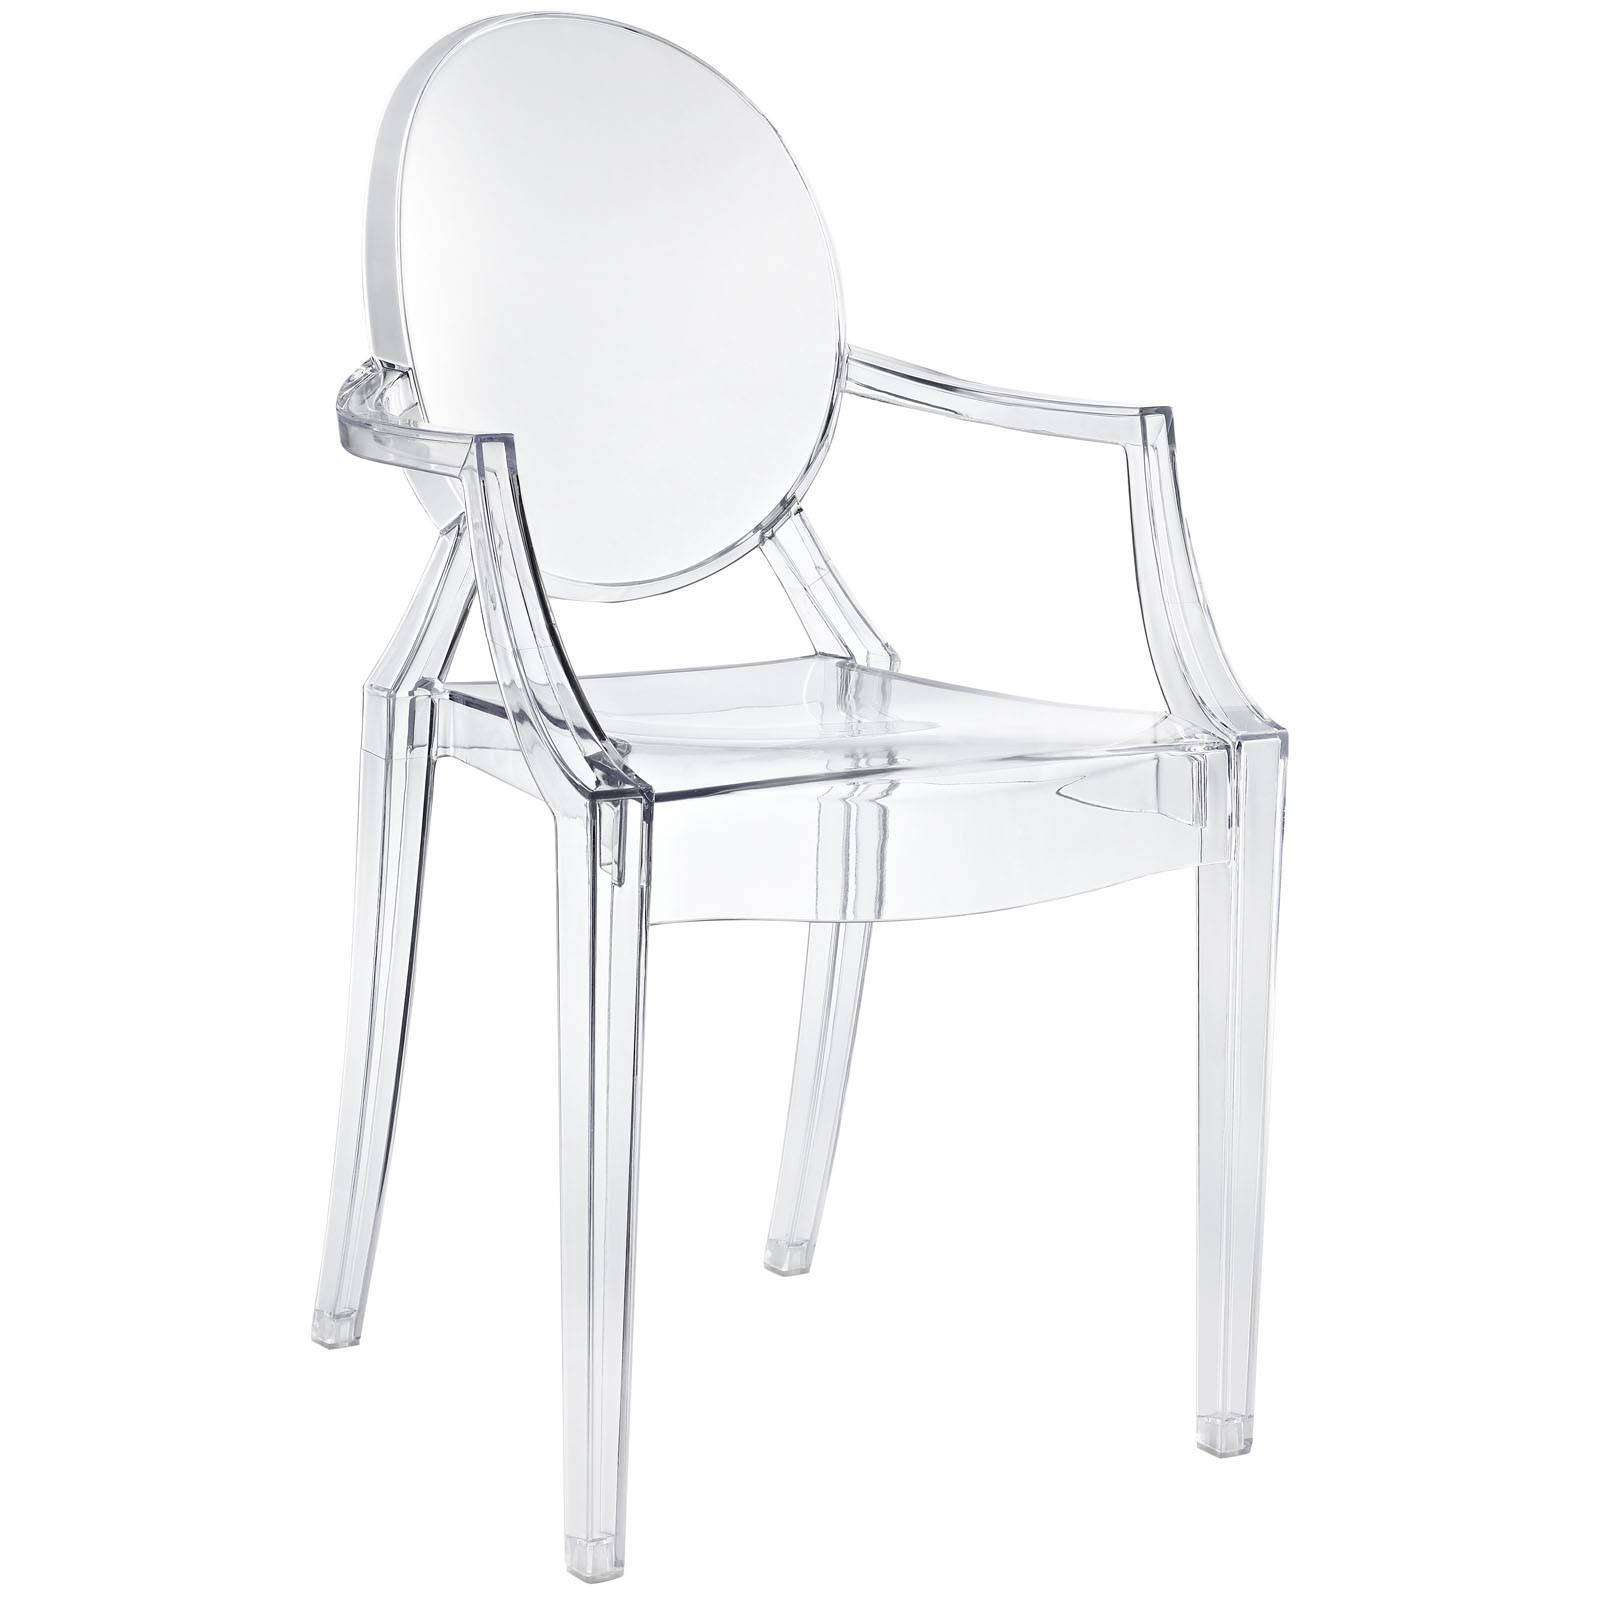 Clear Acrylic Chair Philippe Starck Style Louis Ghost Arm Chair